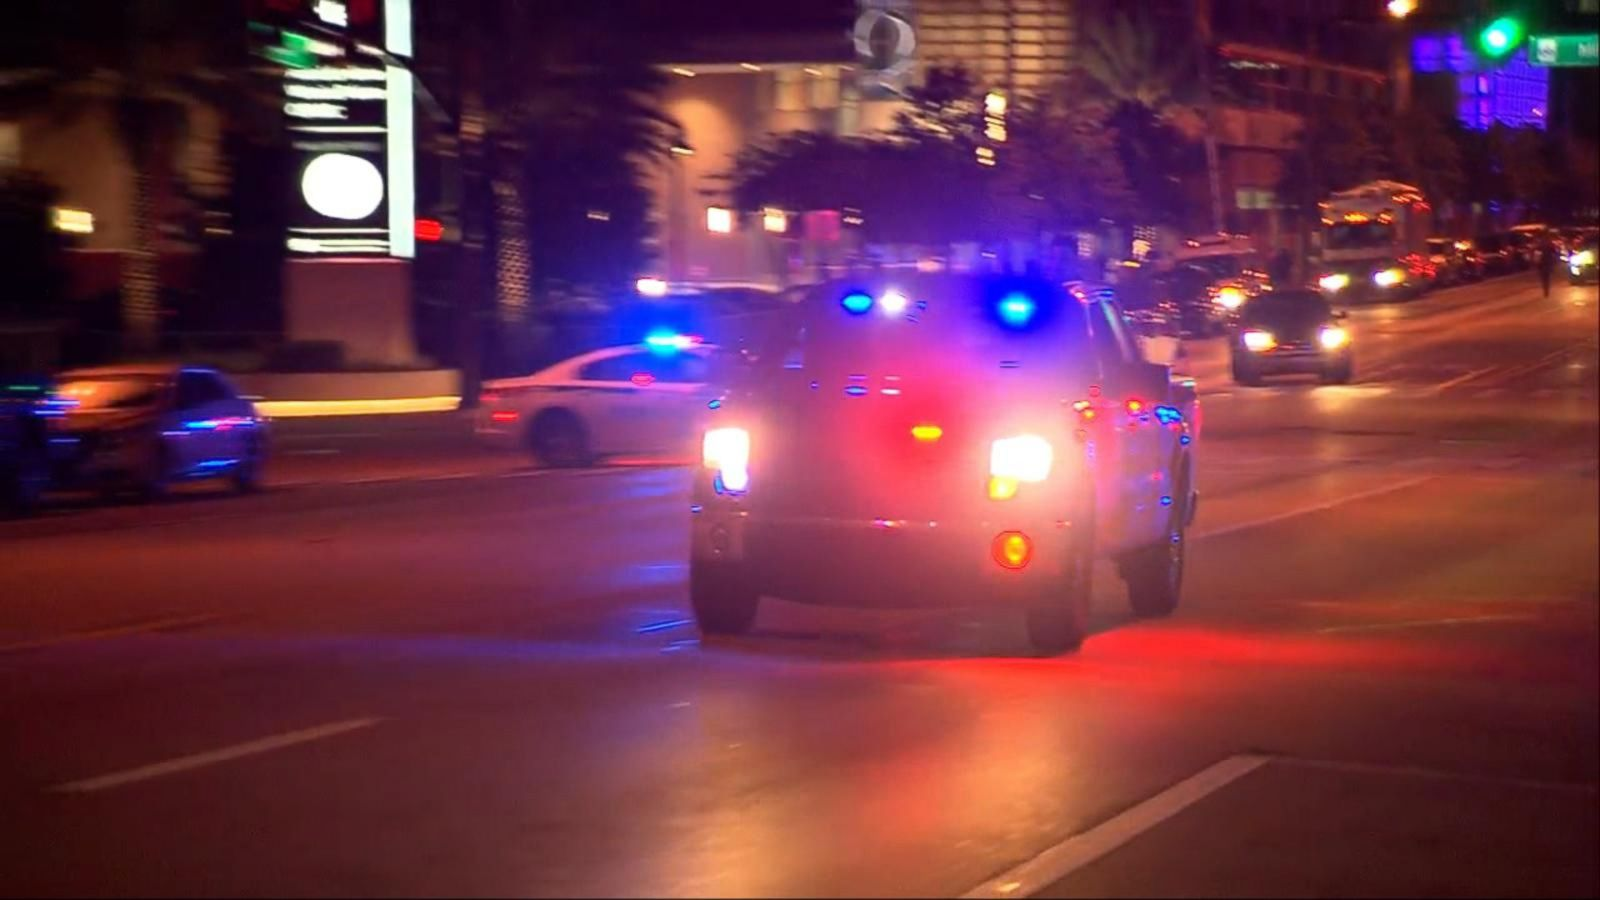 VIDEO: Orange County Sheriff's Department Releases 911 Calls From Pulse Nightclub Shooting